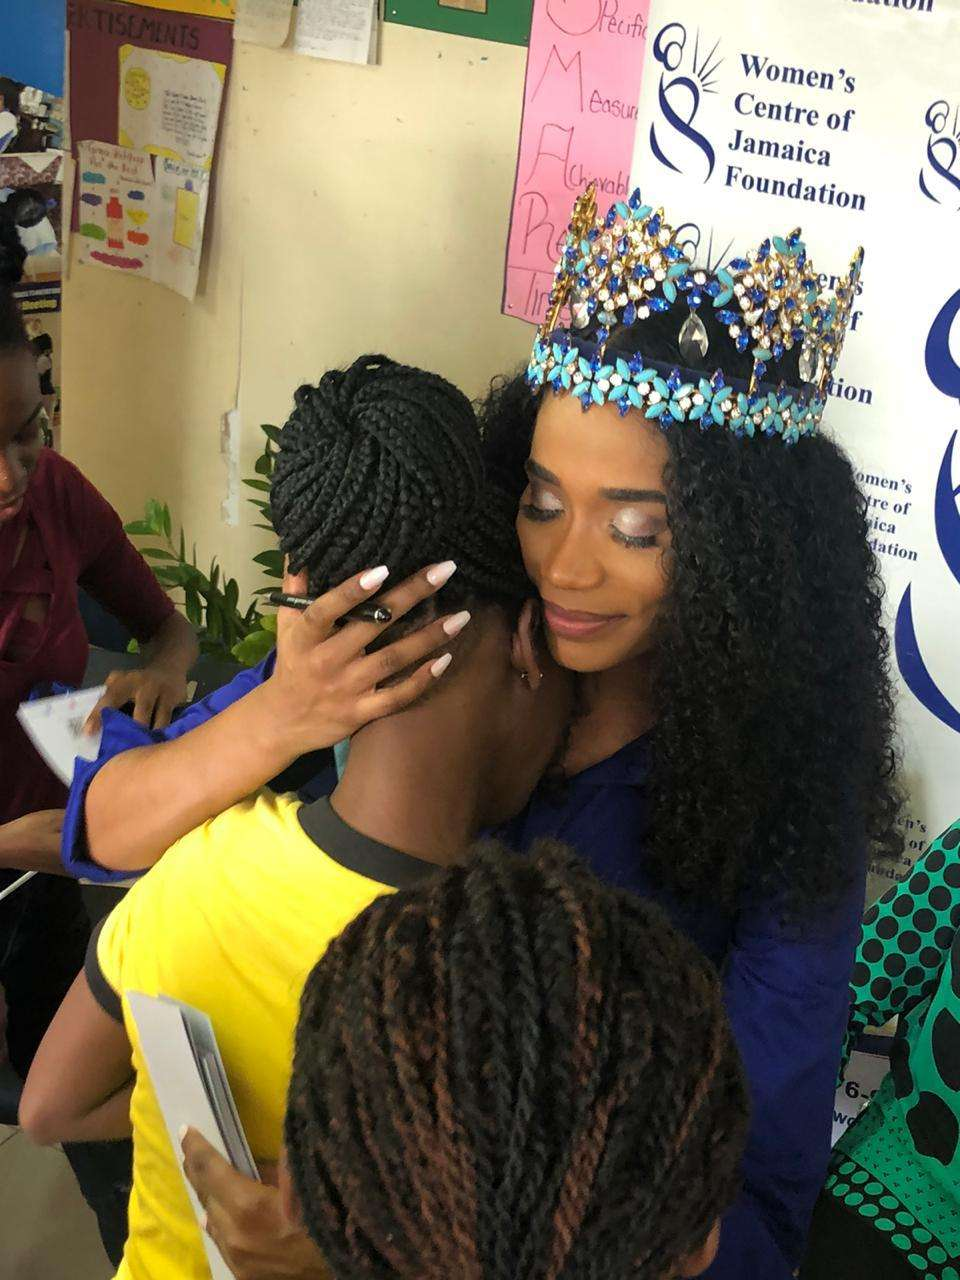 Gov't To Build New Nursery In Honour Of Singh's Miss World Win